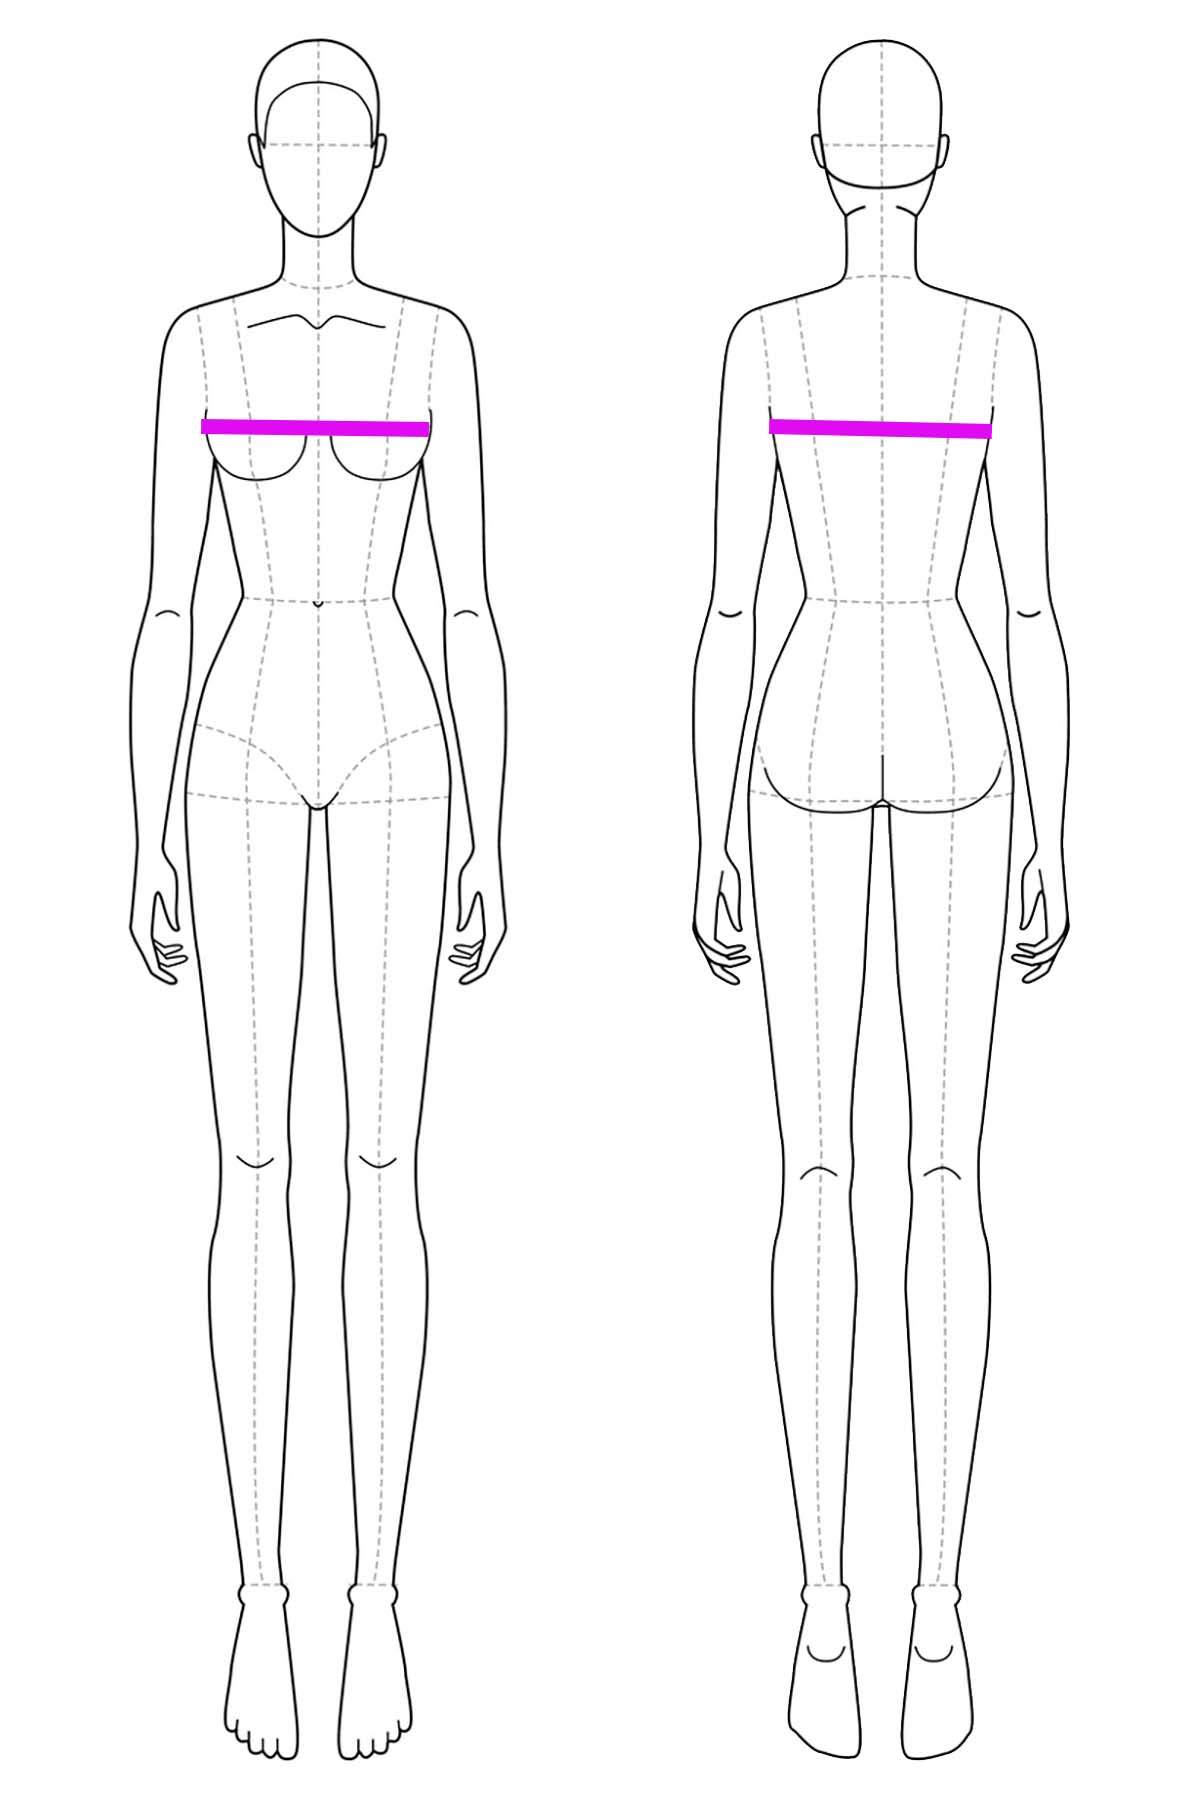 A set of line drawings of a female body, front and back views. Bright pink lines are drawn across it to indicate chest or bust measurement.